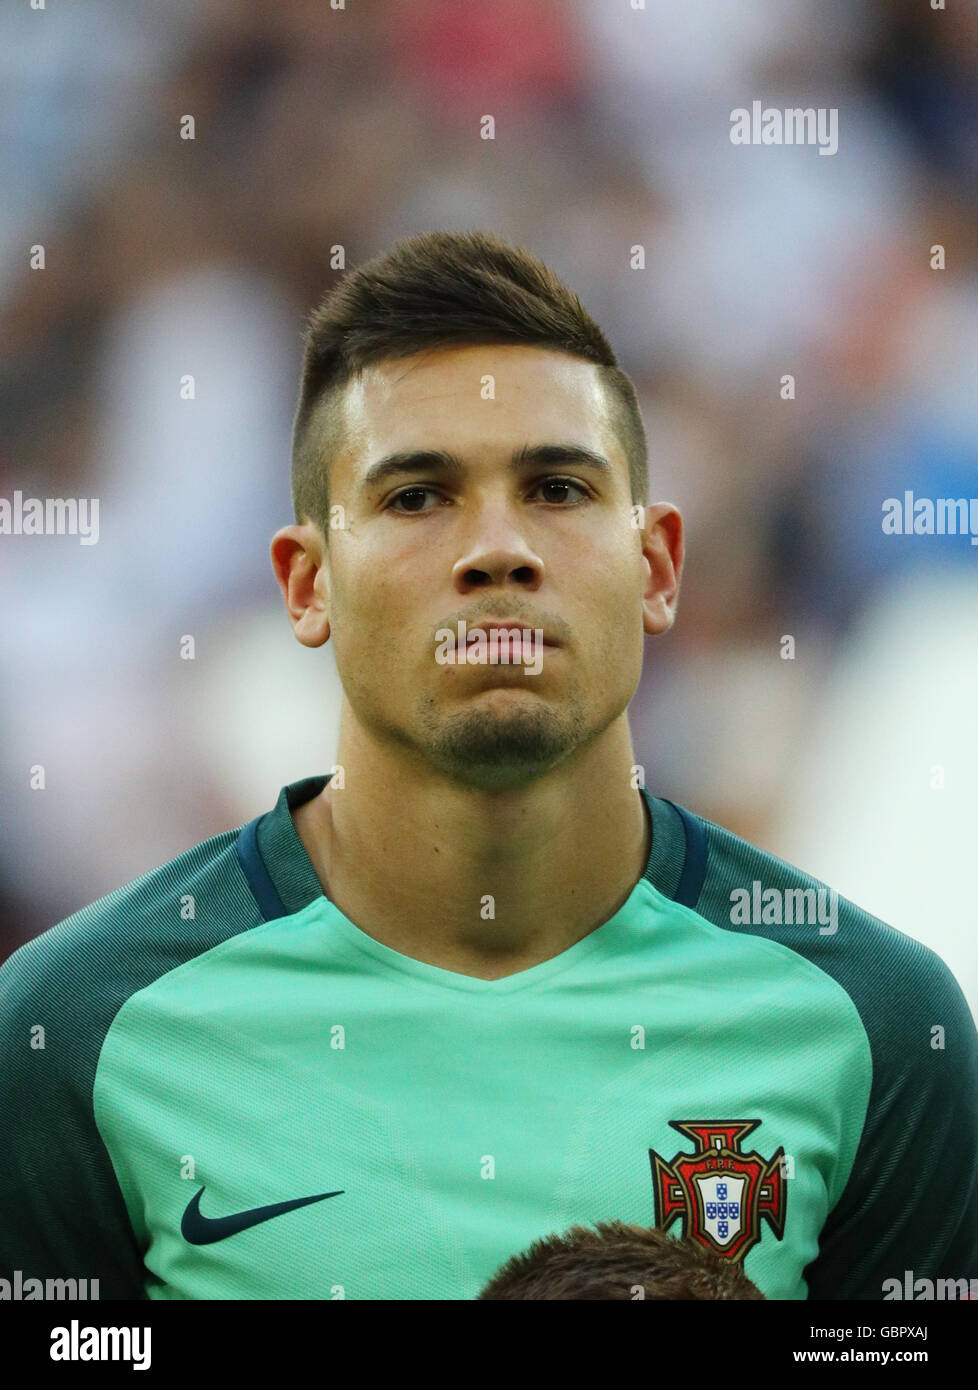 Lyon France 06th July 2016 Raphael Guerreiro of Portugal